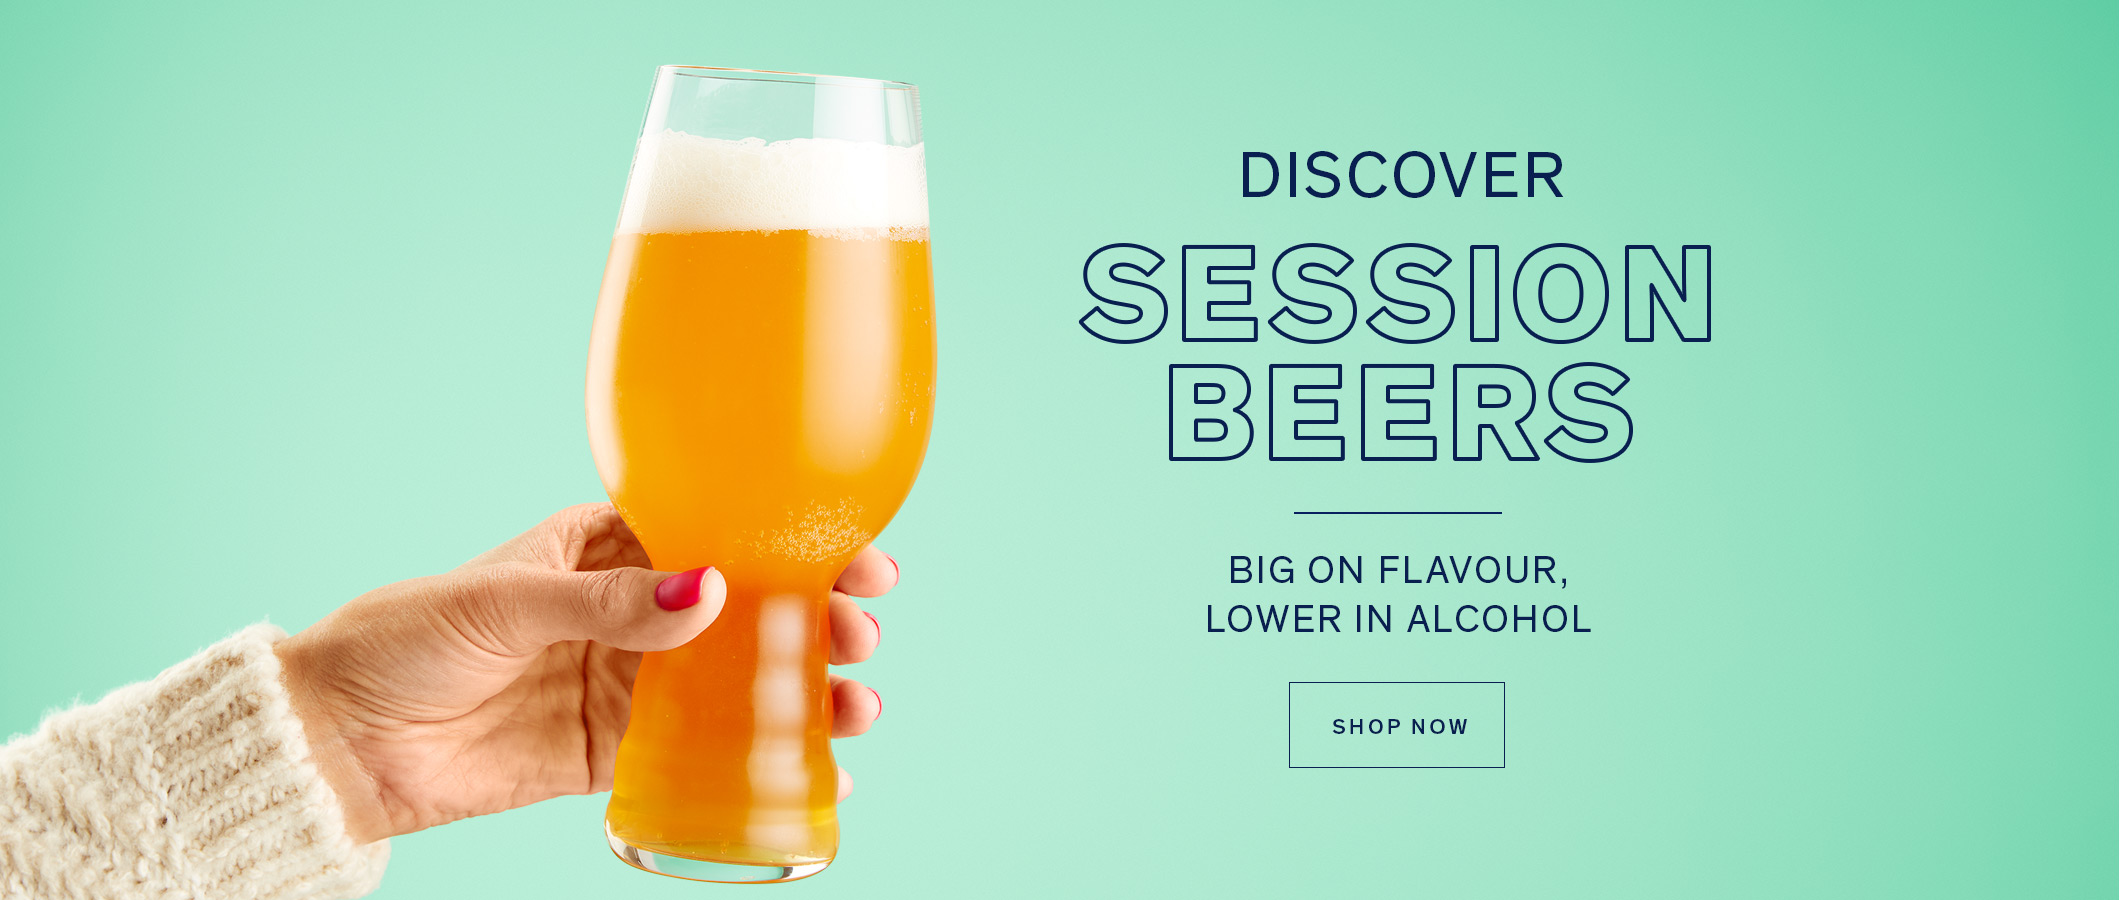 Discover Session Beers  Big on flavour, lower in alcohol SHOP NOW